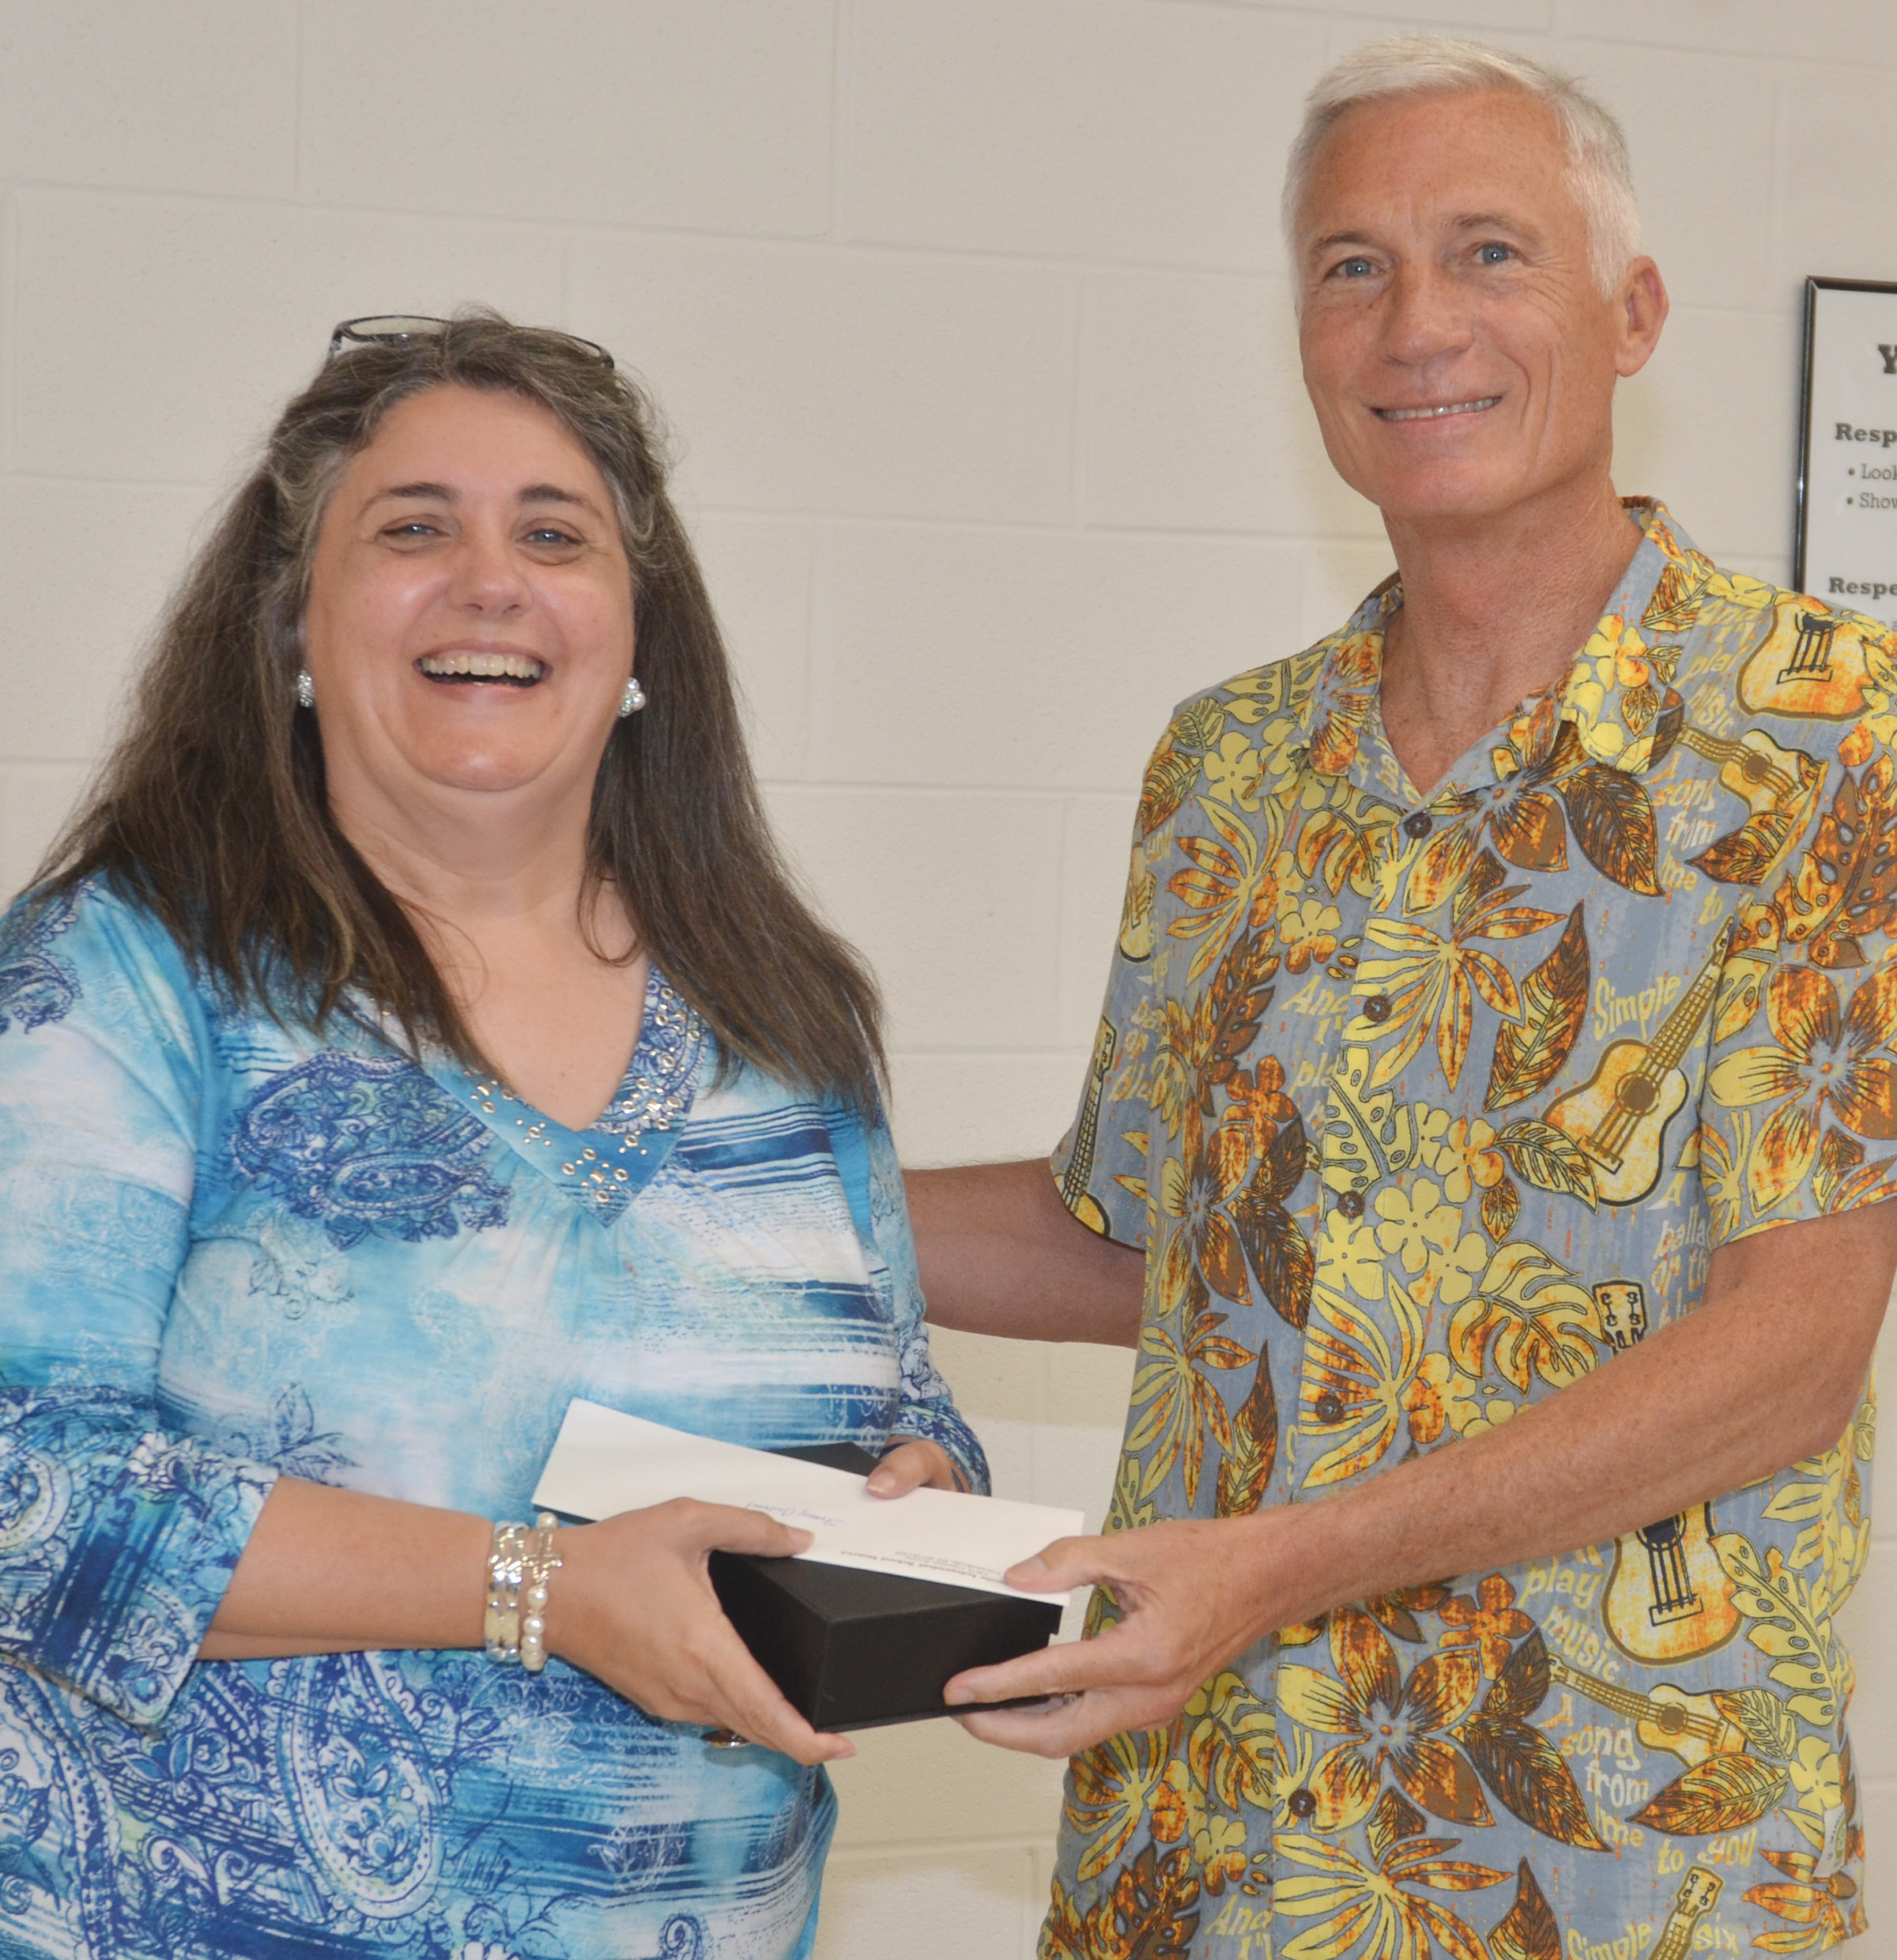 CIS Superintendent Mike Deaton recognizes CES preschool teacher Sherry Cowherd, who is retiring after serving at the District for 17 years. Deaton is also retiring, effective June 30, after working for the District for 10 years.